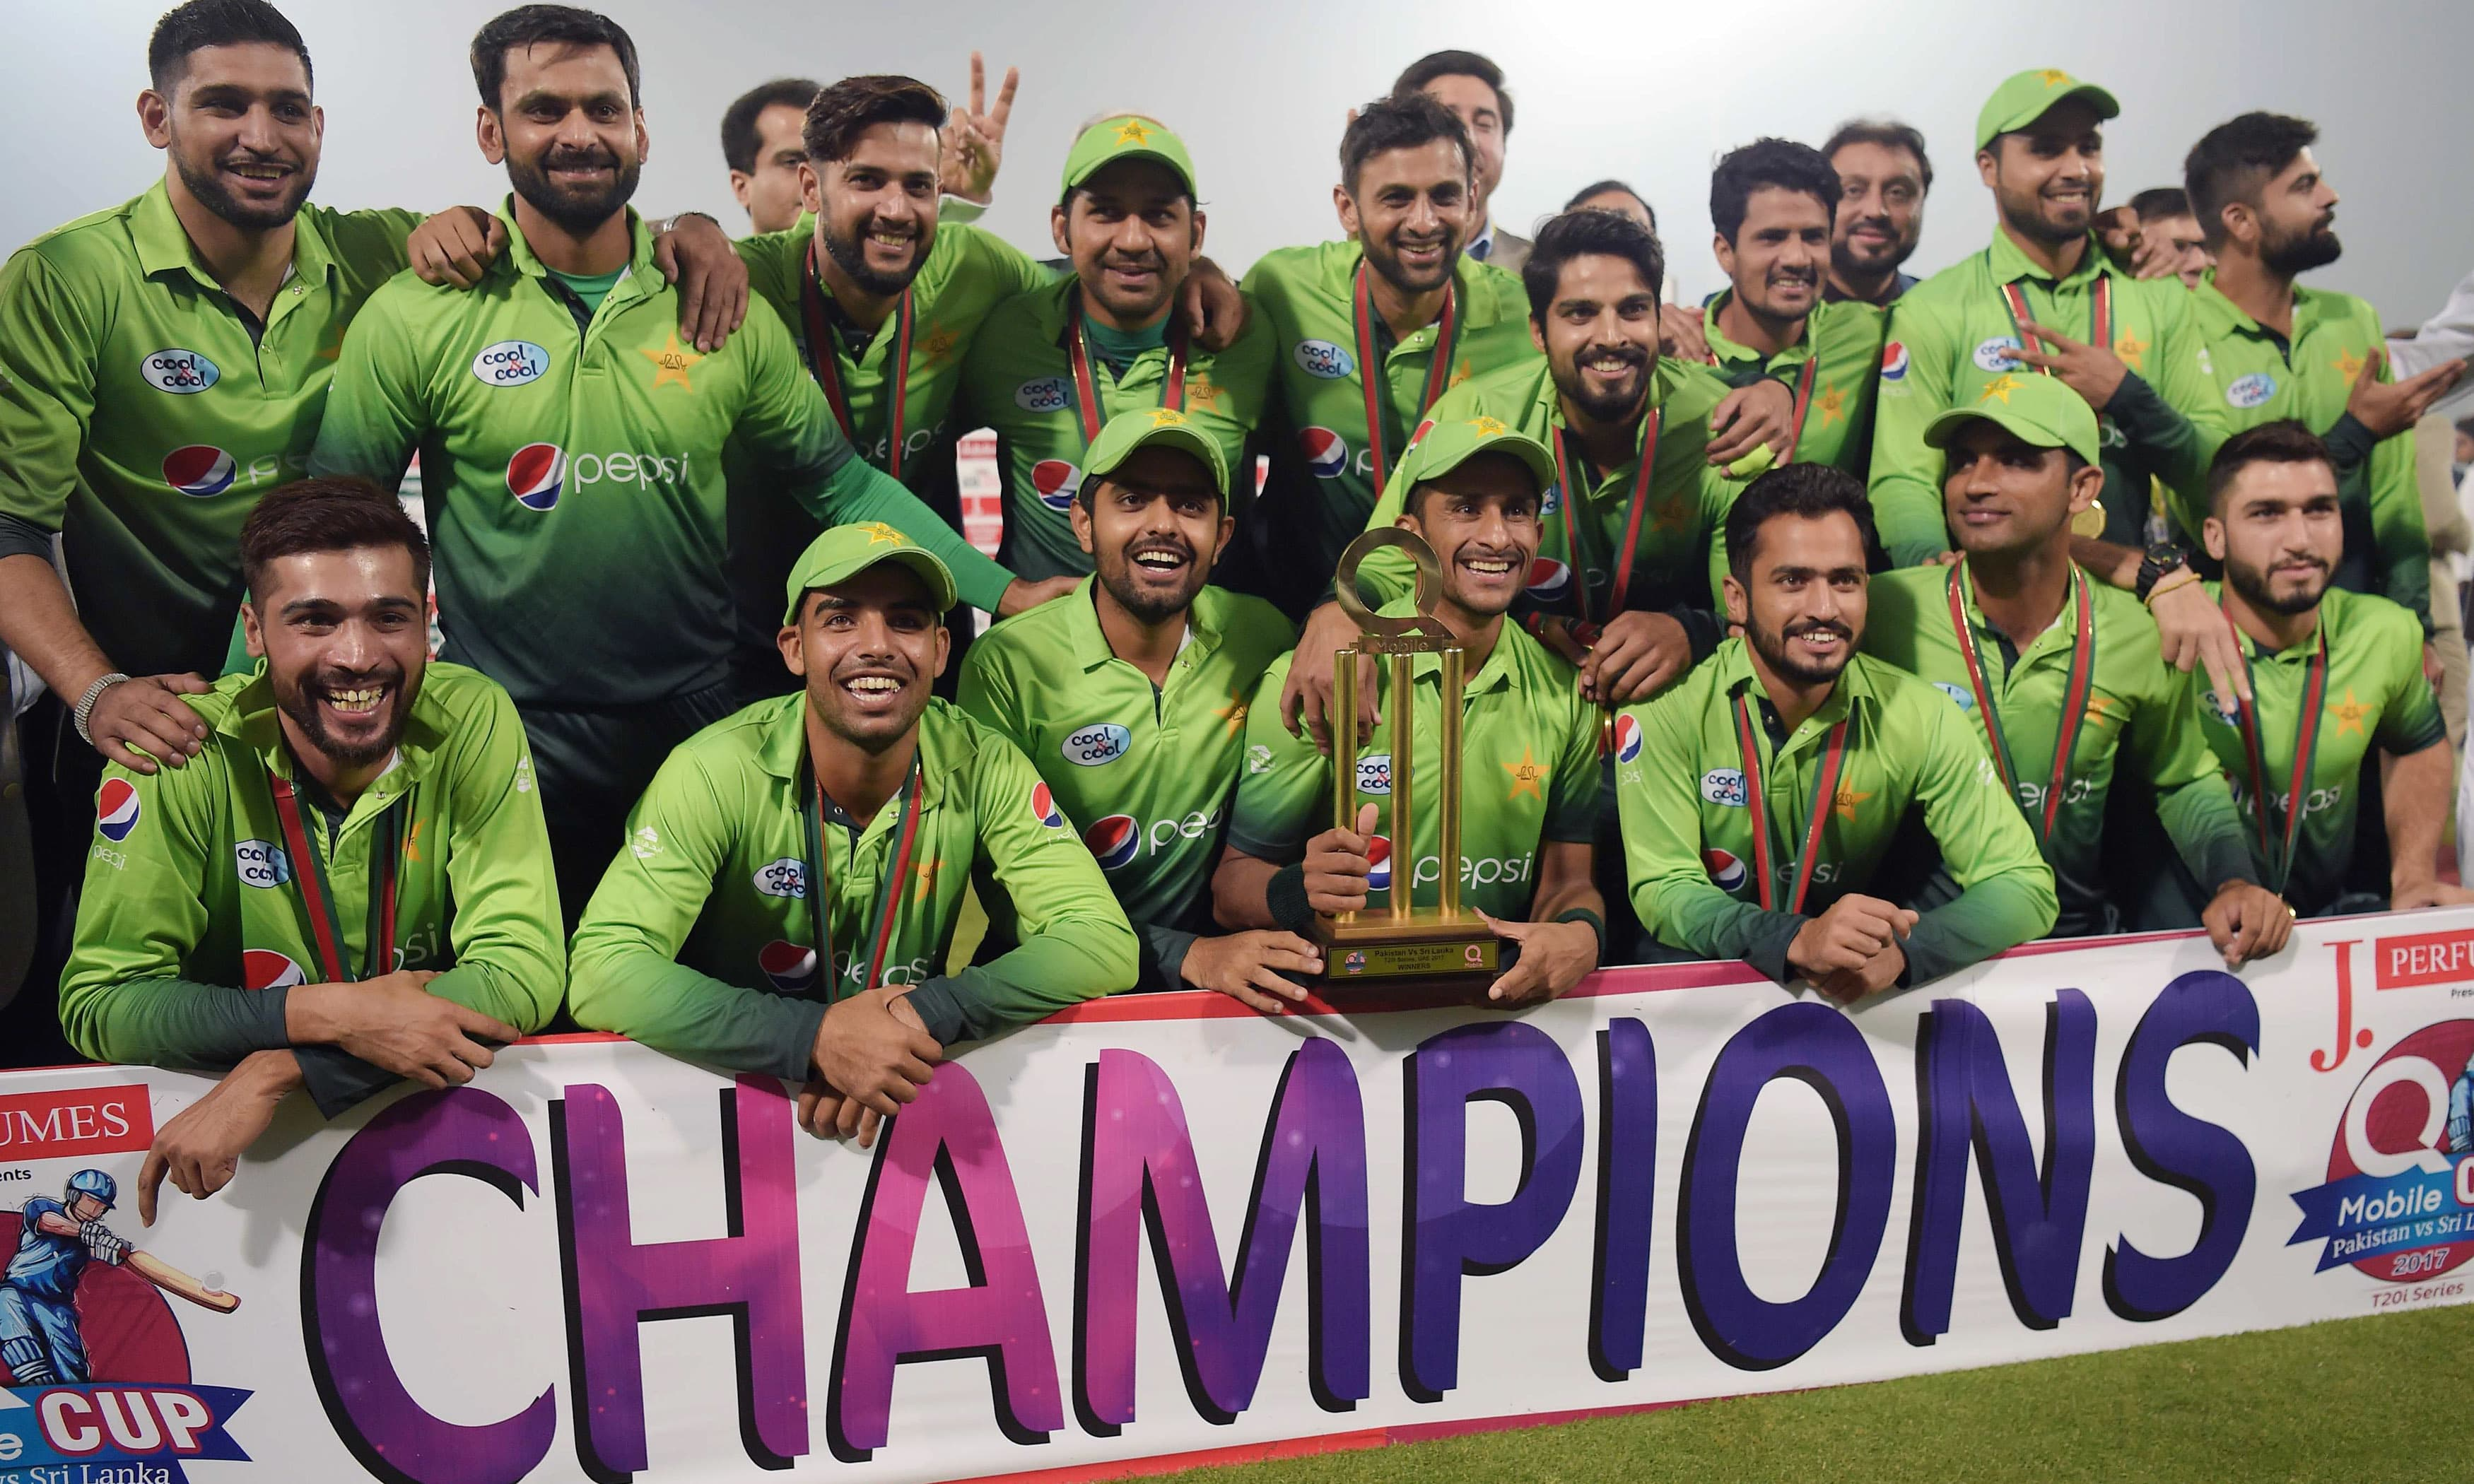 Pakistan's cricket team pose for photographs with the trophy after winning the third and final T20 cricket match against Sri Lanka. —AFP